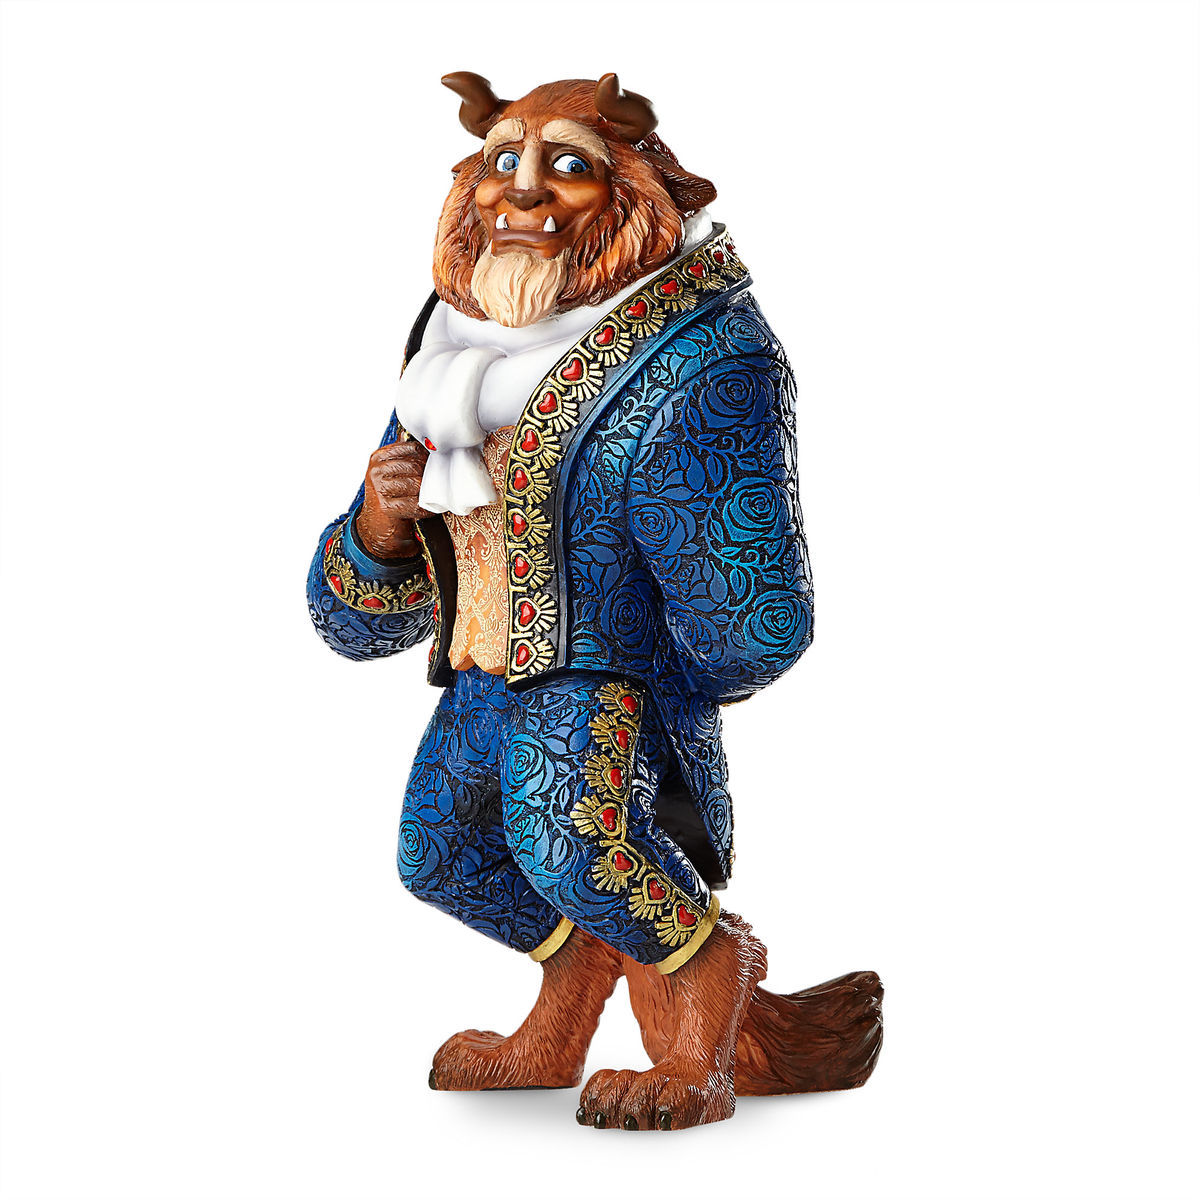 6771eb94f71 Product Image of Beast Couture de Force Figurine by Enesco - Beauty and the  Beast